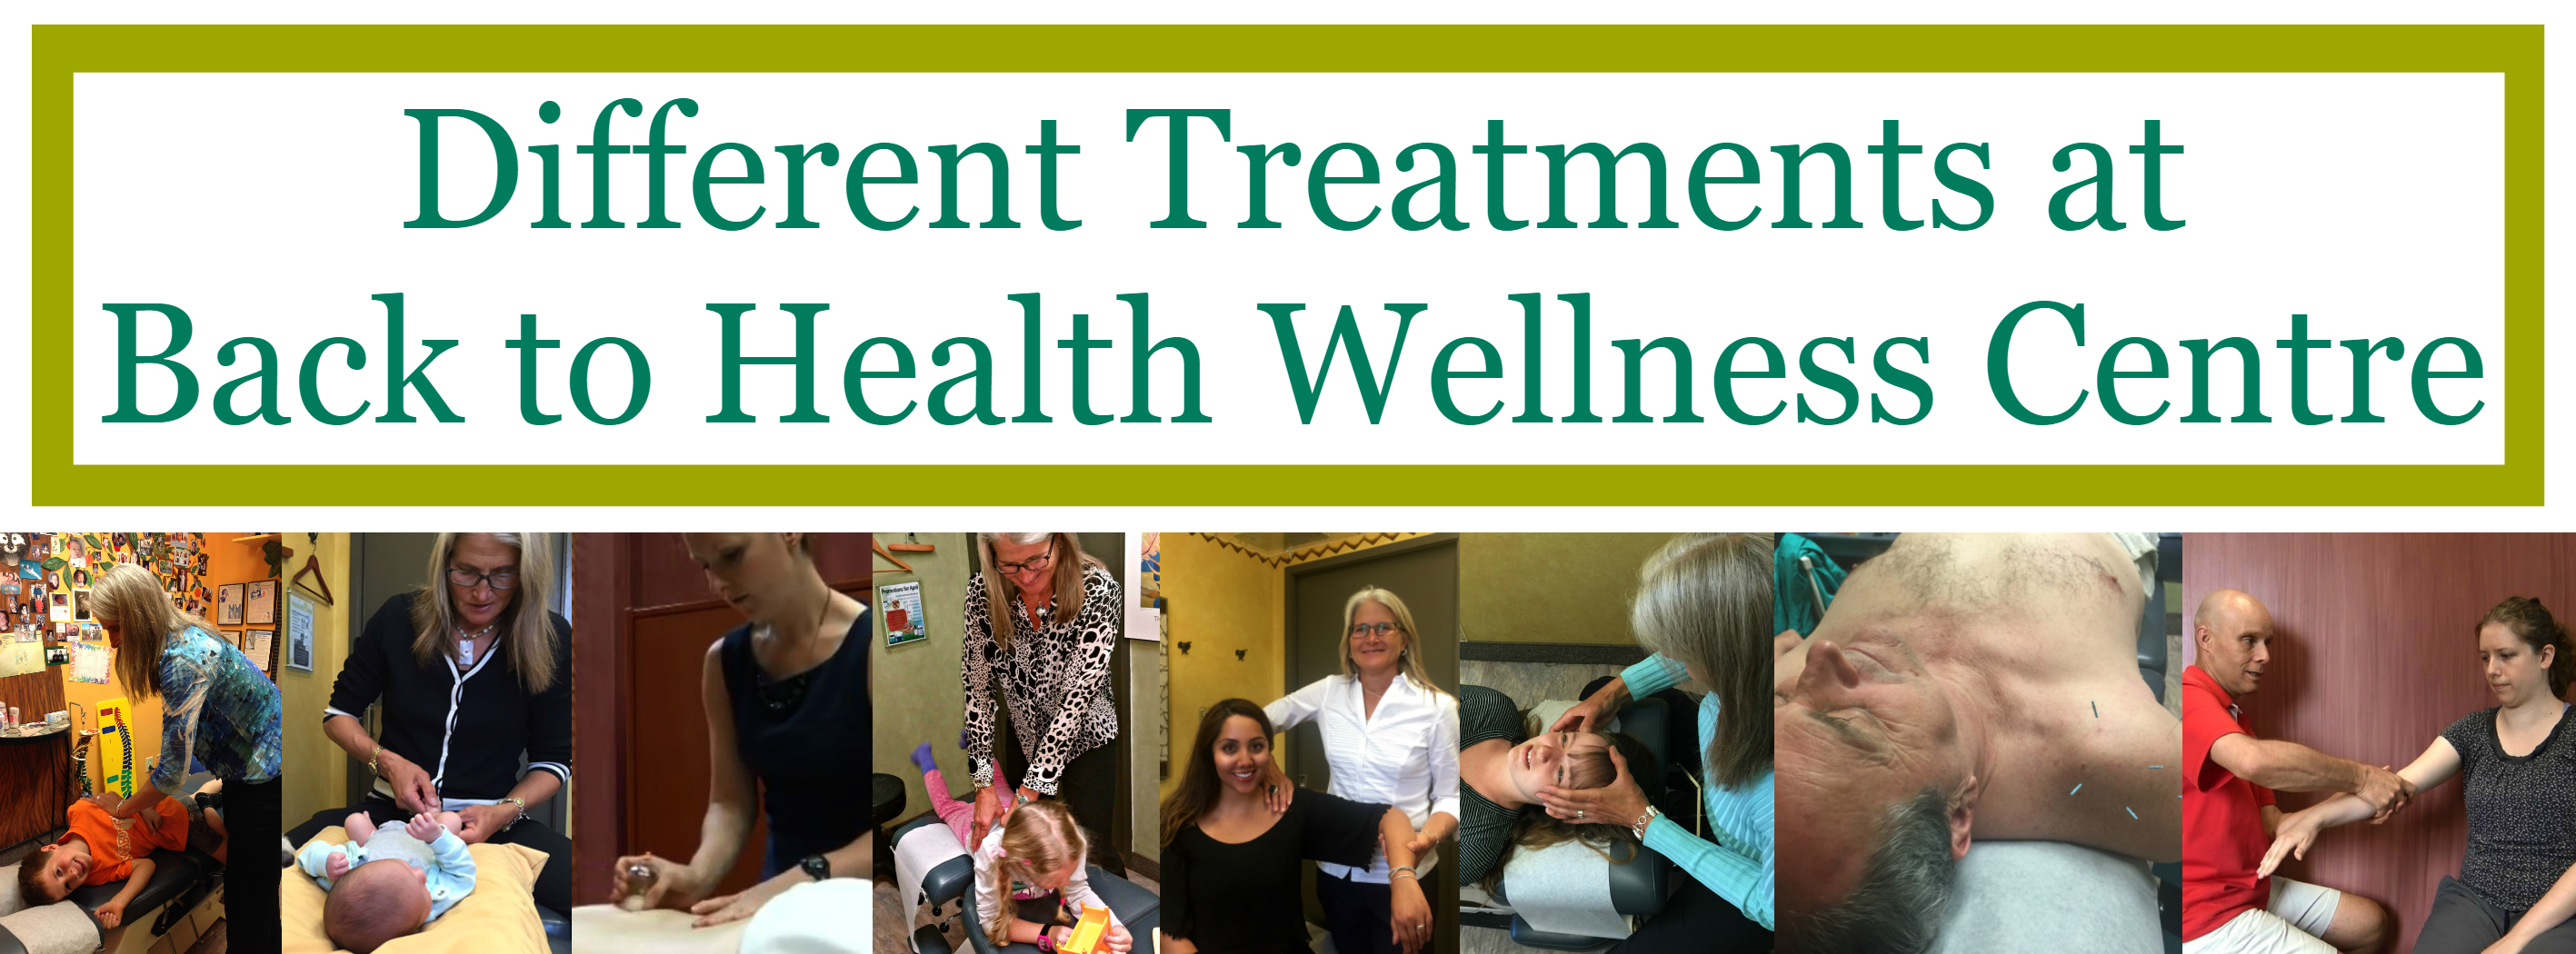 Different Treatments at Back to Health